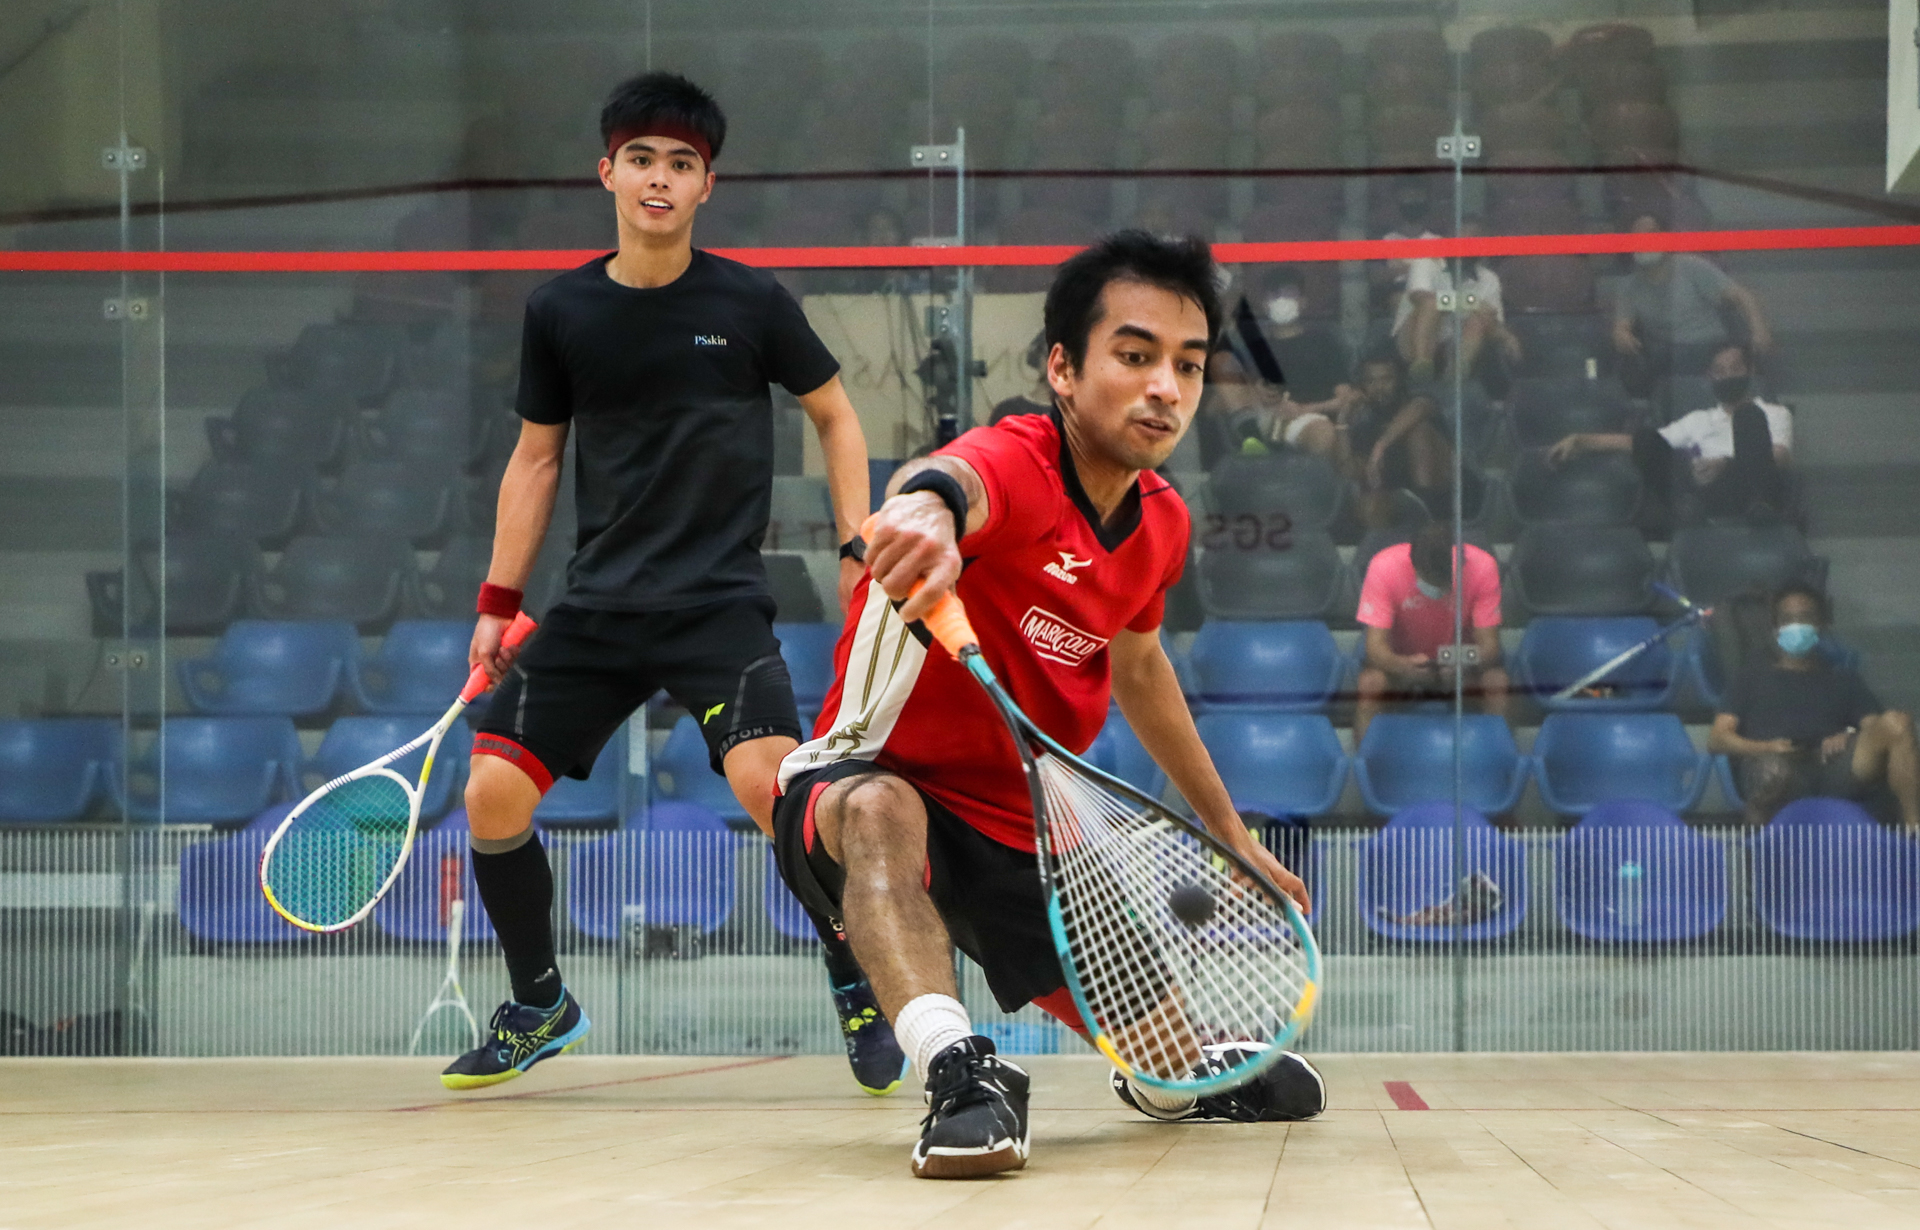 Samuel Kang wins DYMON Asia SGSquash circuit #1 main event, to kick off the annual squash season